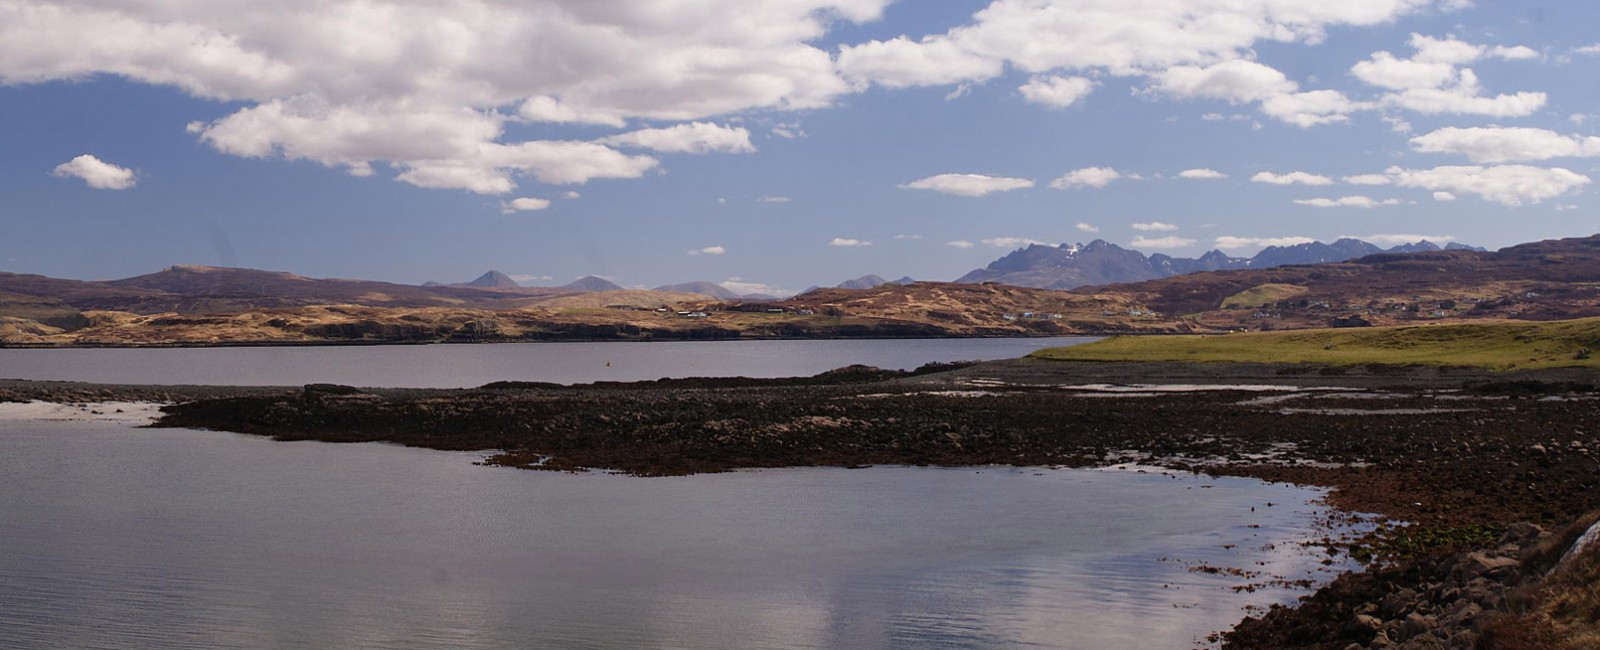 The Majestic Cuillin Mountains